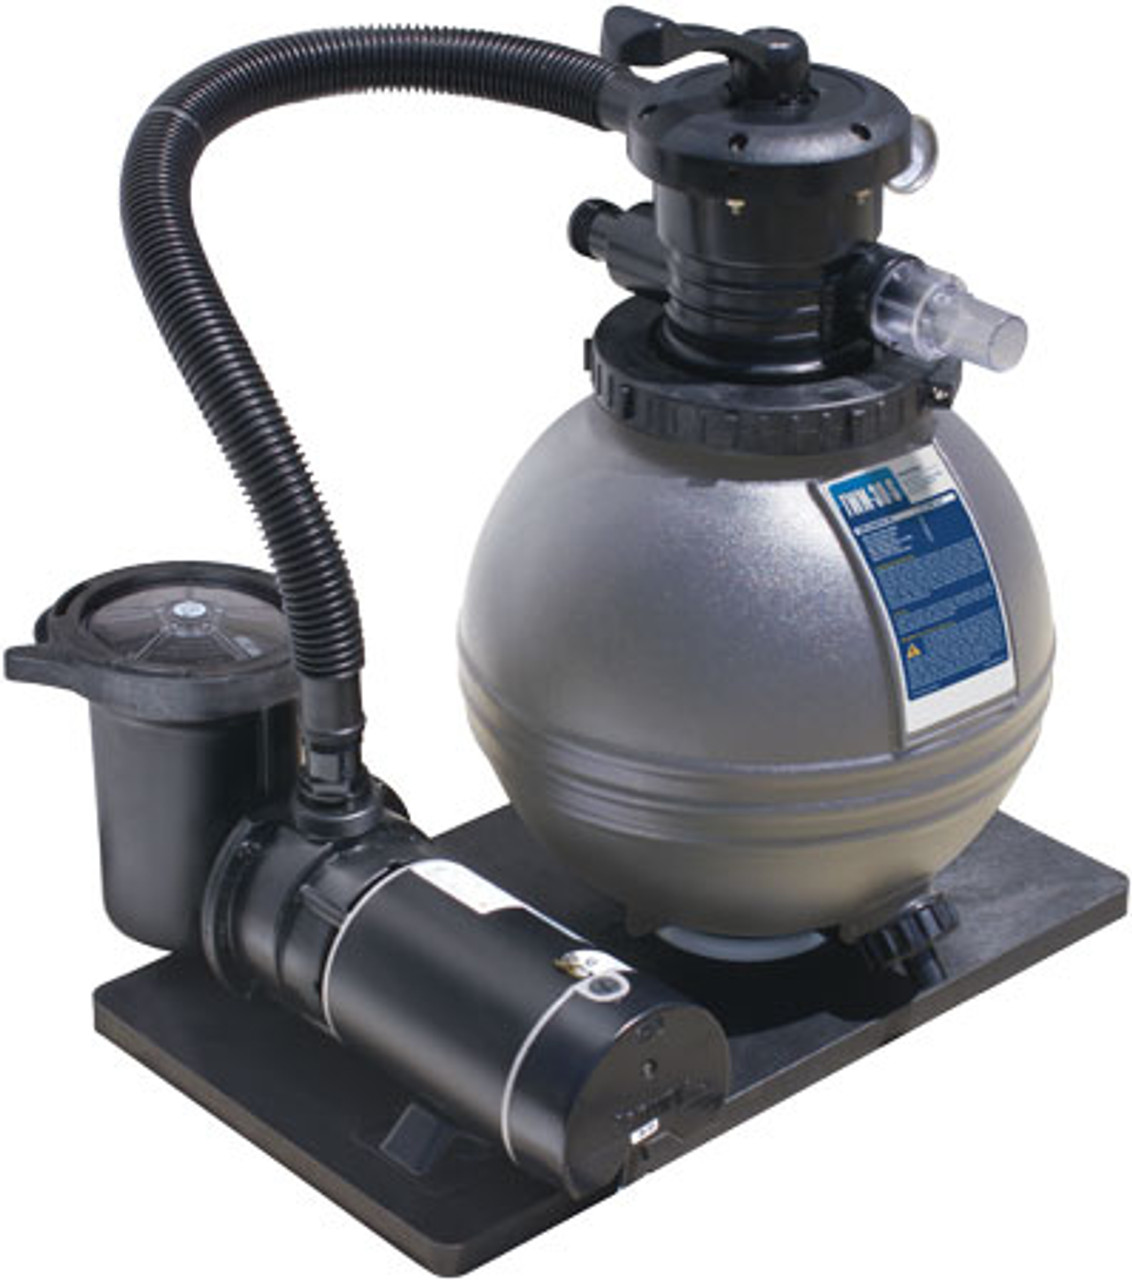 Best bang for the buck: Waterways 16 Sand Filter System With 1 2 Hp Fully Rated Pool Pump Includes Intex Adapter Fittings For Intex Poolss National Discount Pool Supplies